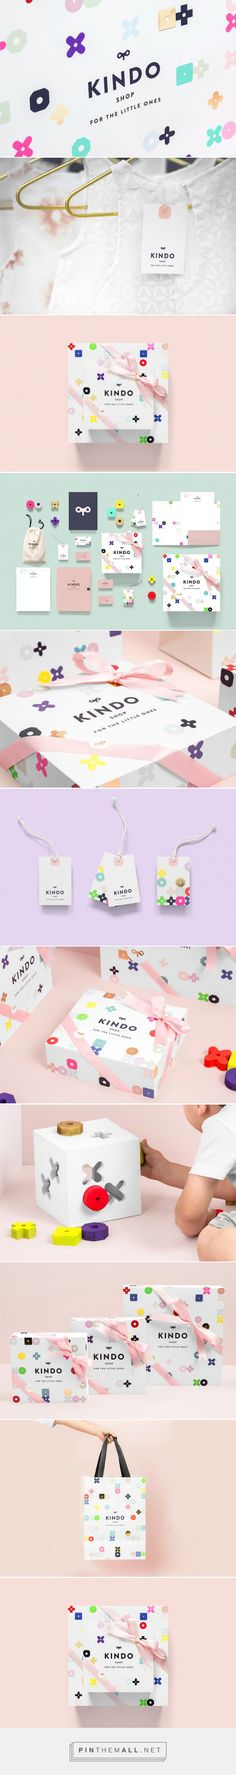 Kindo on Packaging of the World - Creative Package Design Gallery - created via http://pinthemall.net